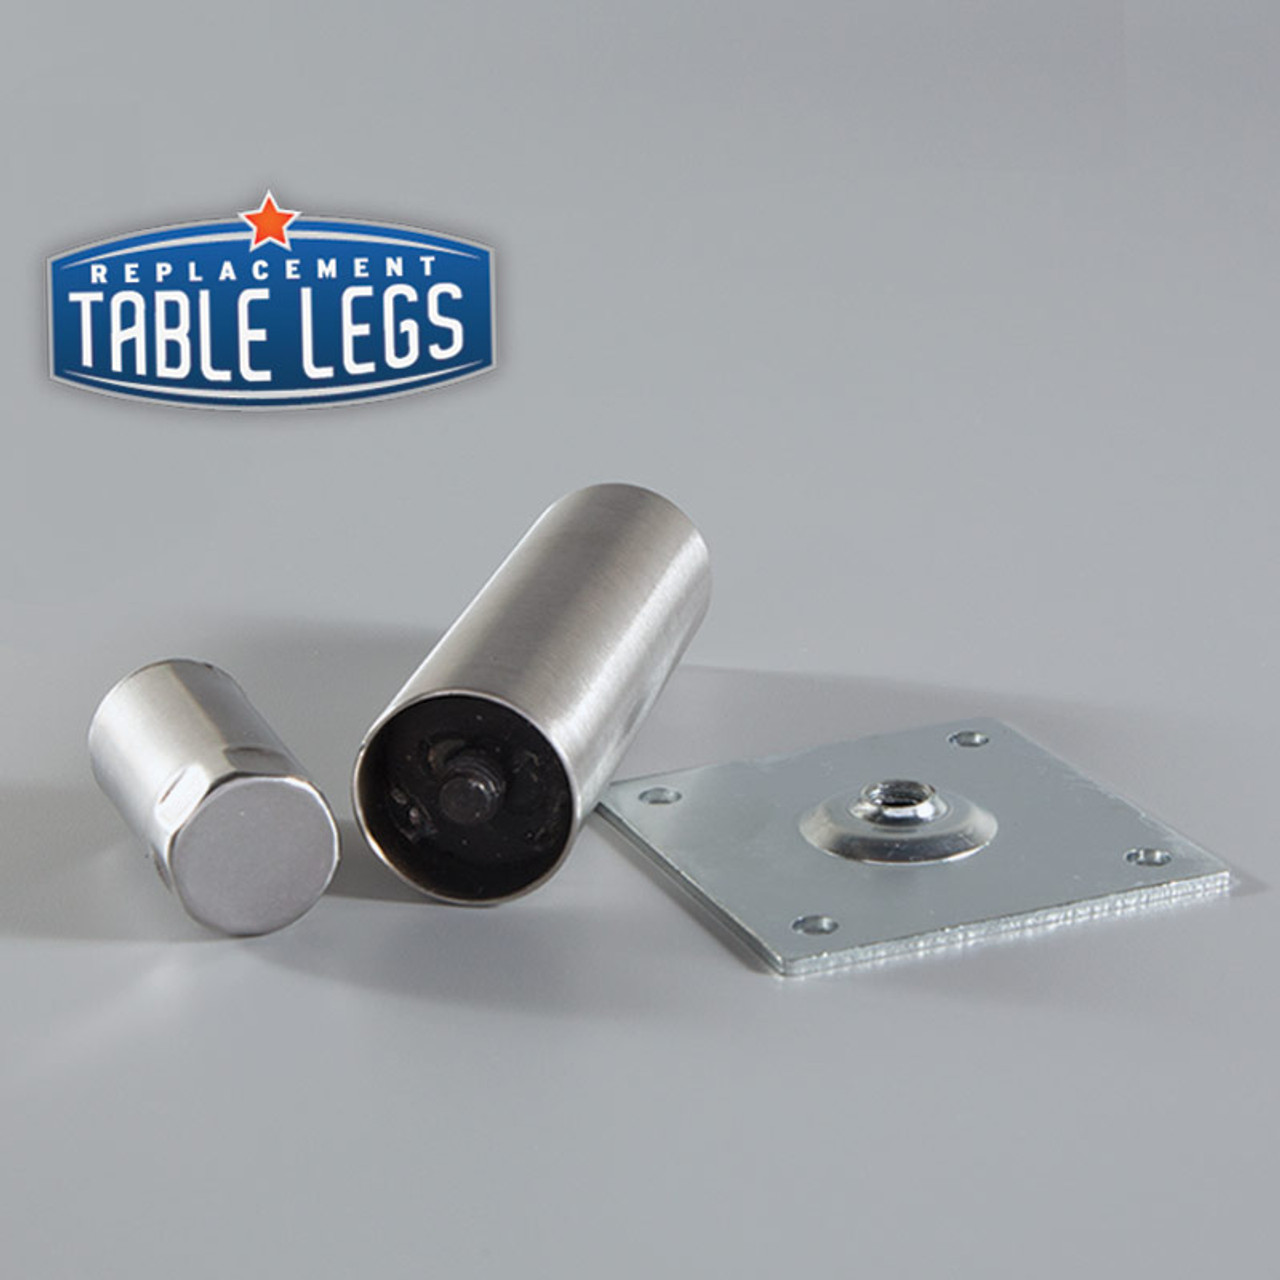 Disassembled Mounting Bracket and Heavy Duty Equipment Leg  - replacementtablelegs.com